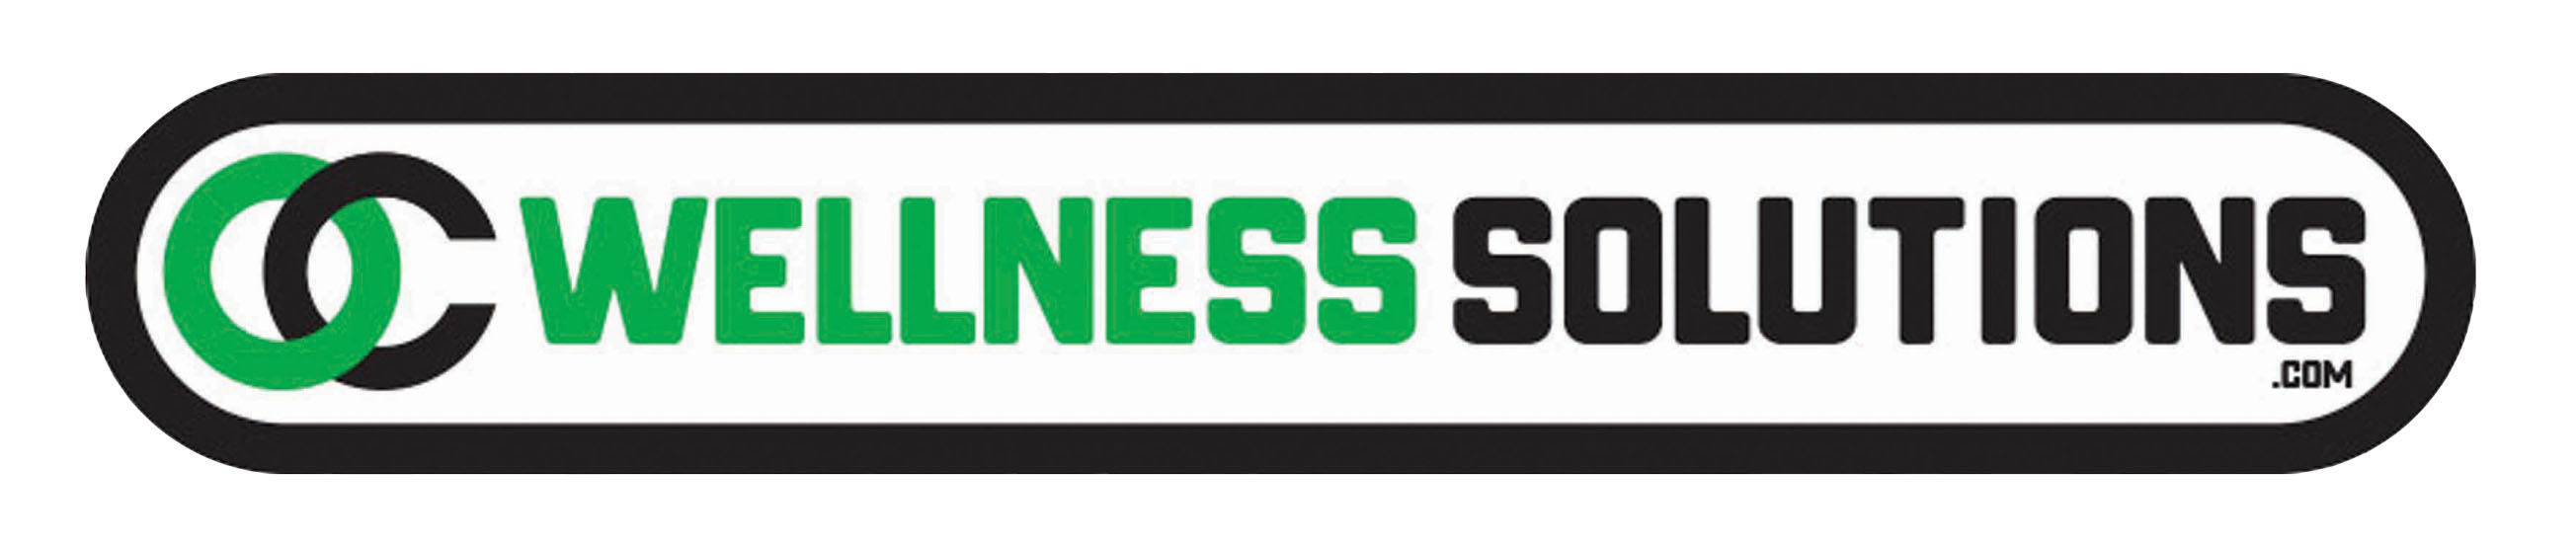 OC Wellness Solutions Leads The Industry in Extra Strength CBD Topical Products